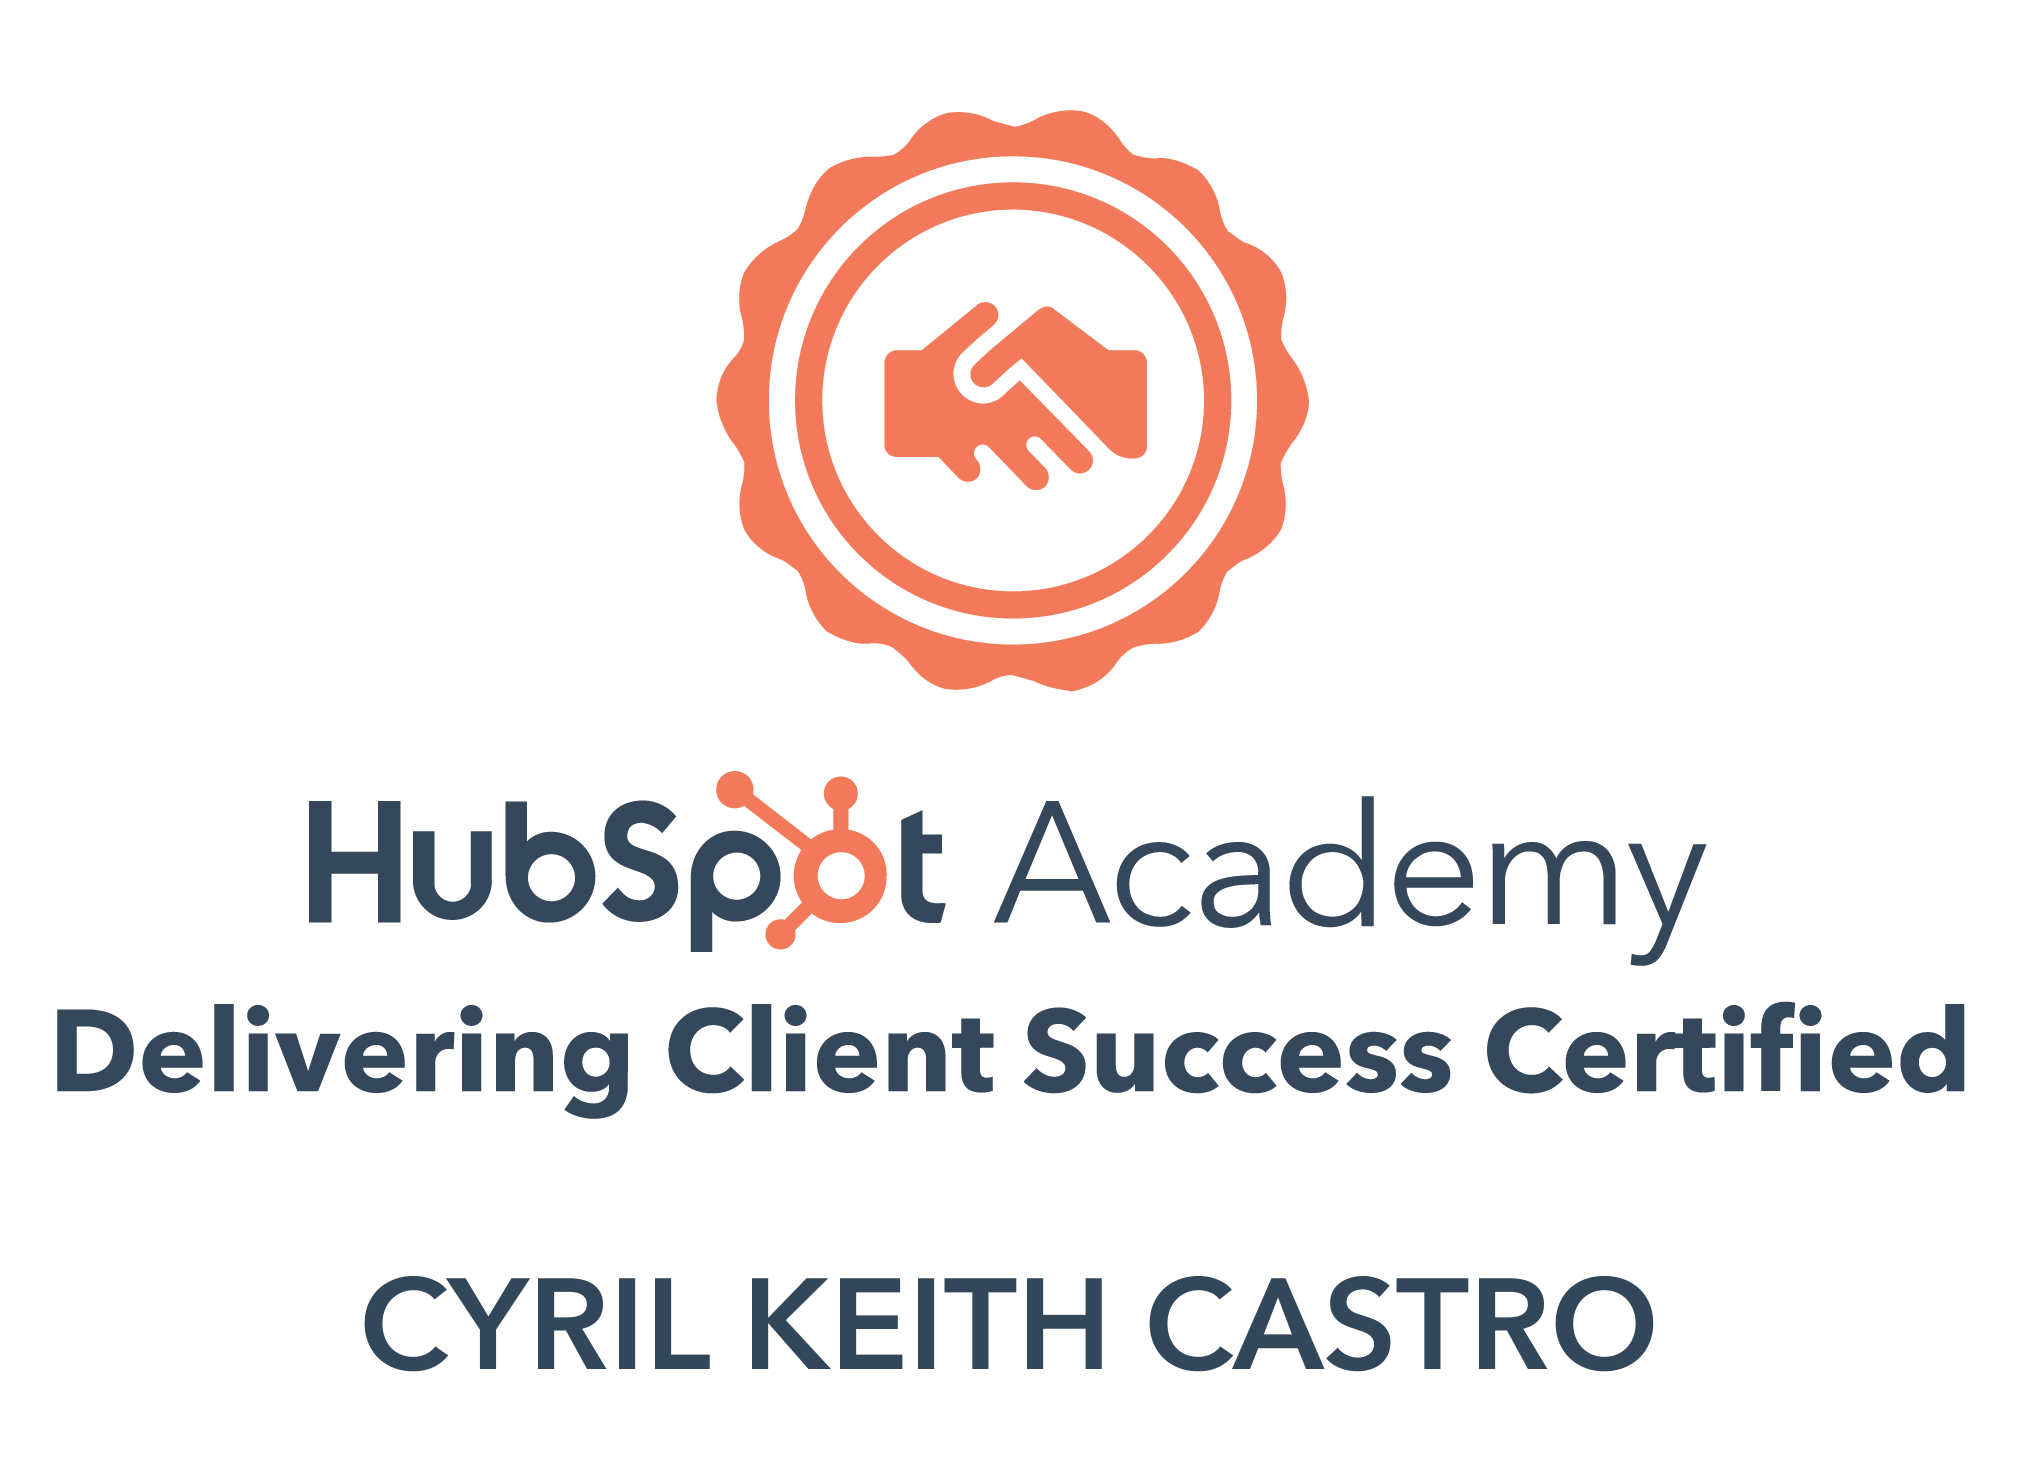 Hubspot Delivering Client Success